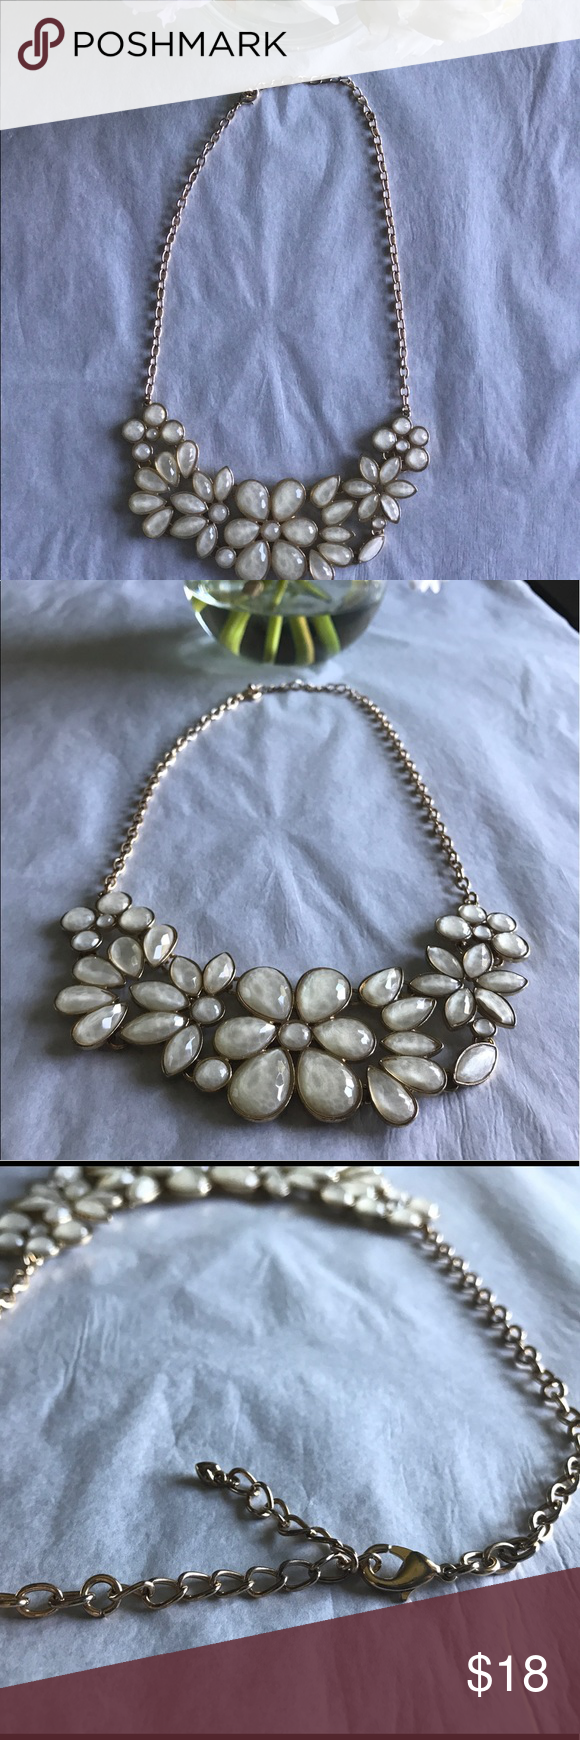 Francesca's Statement Necklace Off white necklace from Francesca's is beautiful and perfect to glam up any outfit. Chain has absolutely no wear. Only worn a couple times. Pair it in a bundle to get 15% off ☺️ Francesca's Collections Jewelry Necklaces